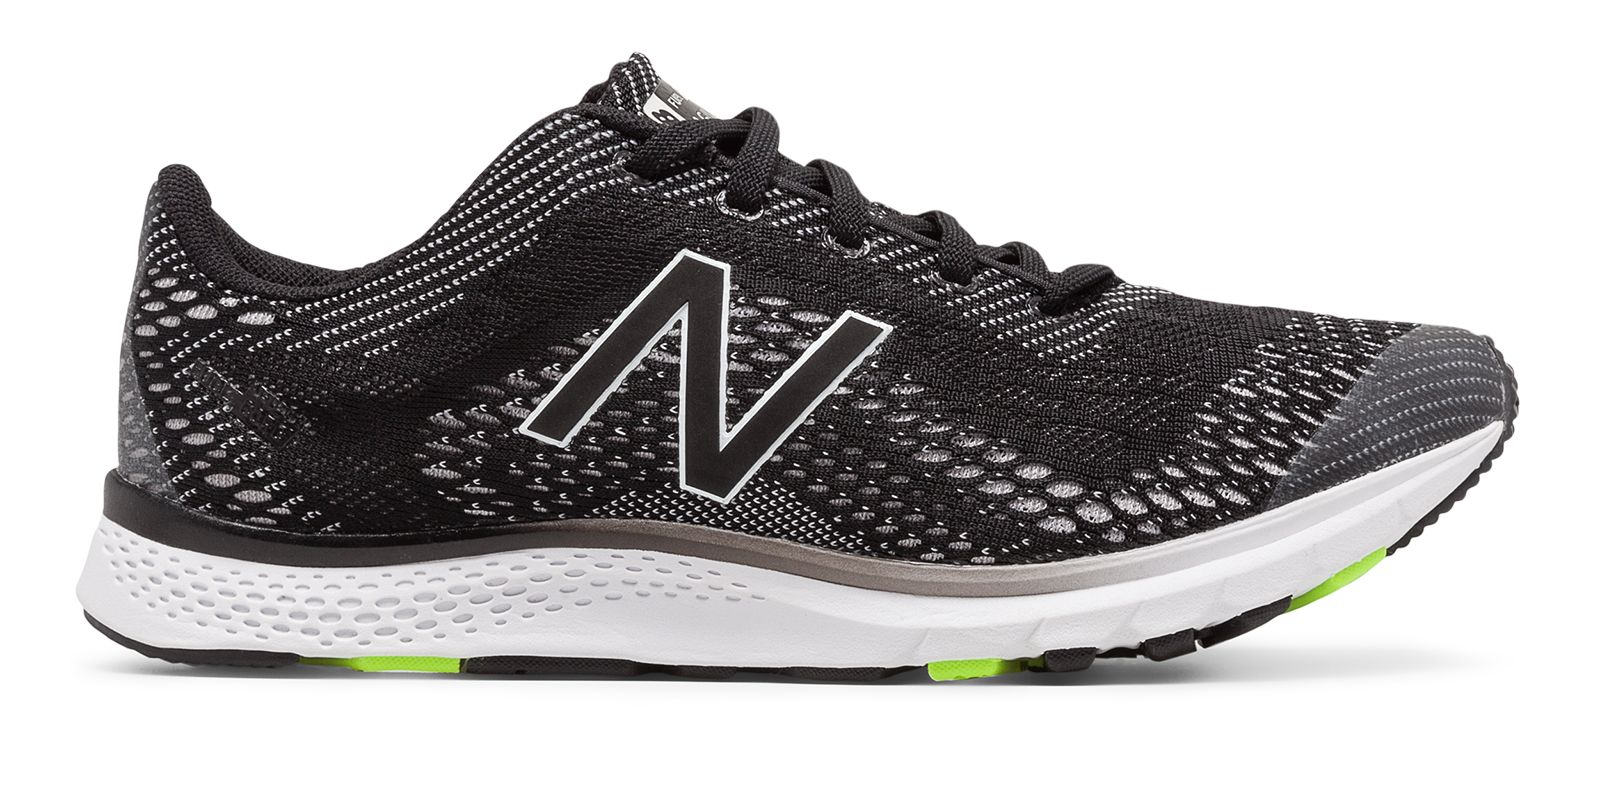 NB Vazee Agility v2 Trainer, Black with White